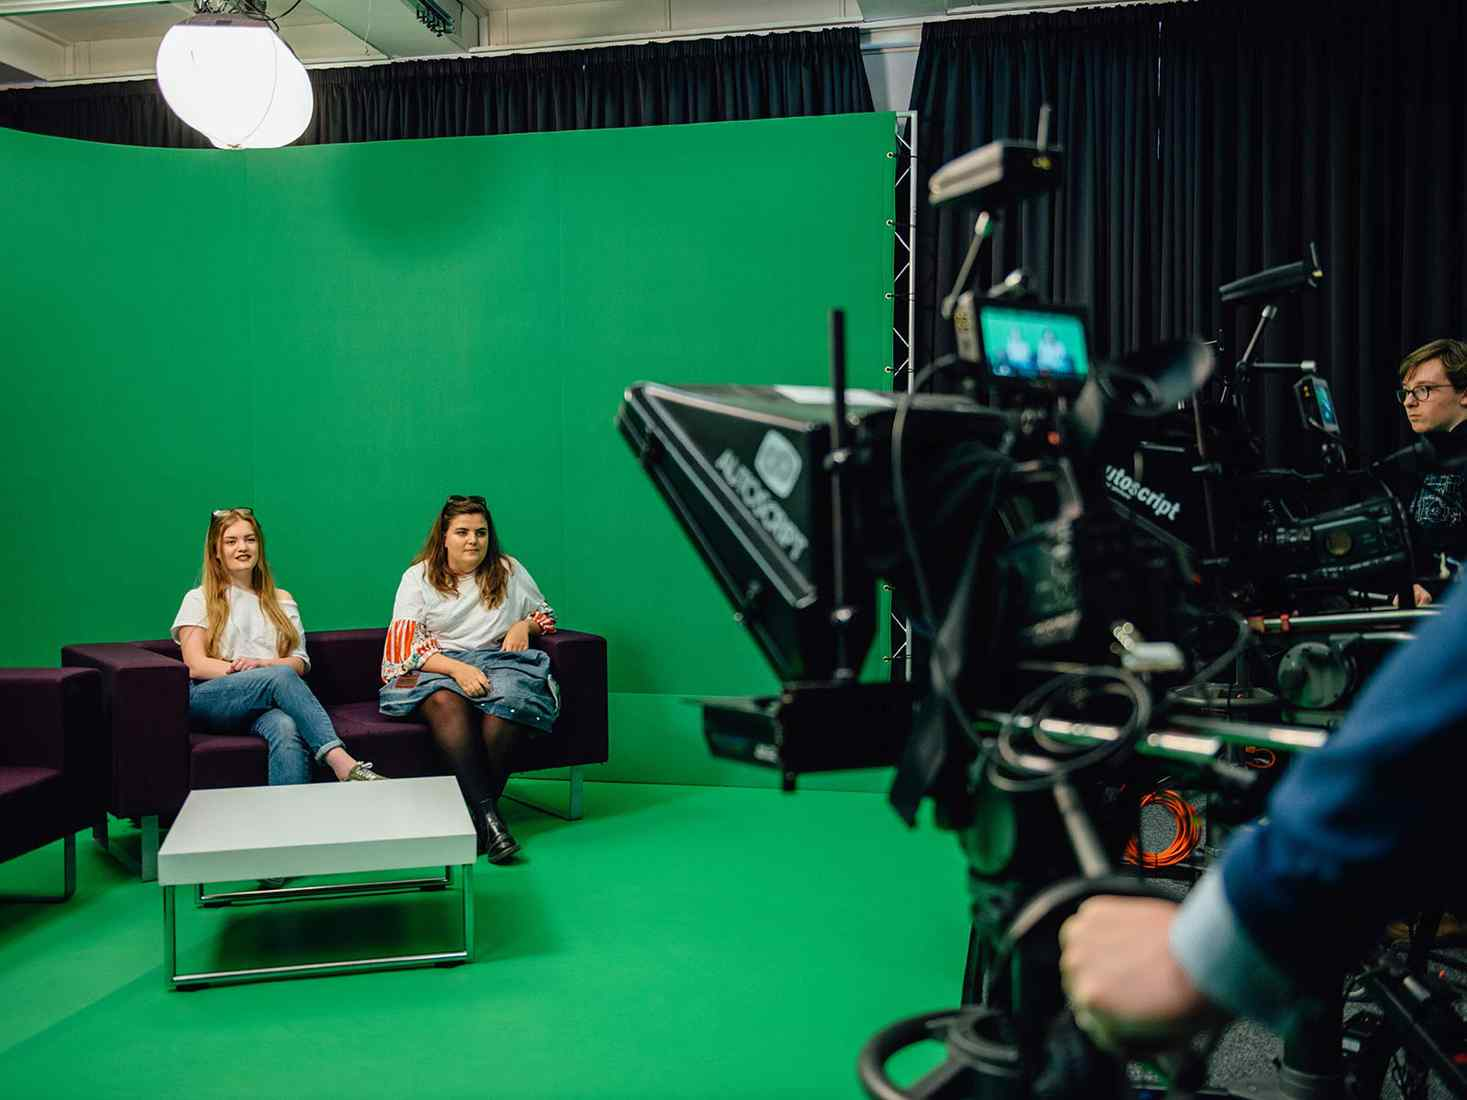 Two students sat in front of a green screen